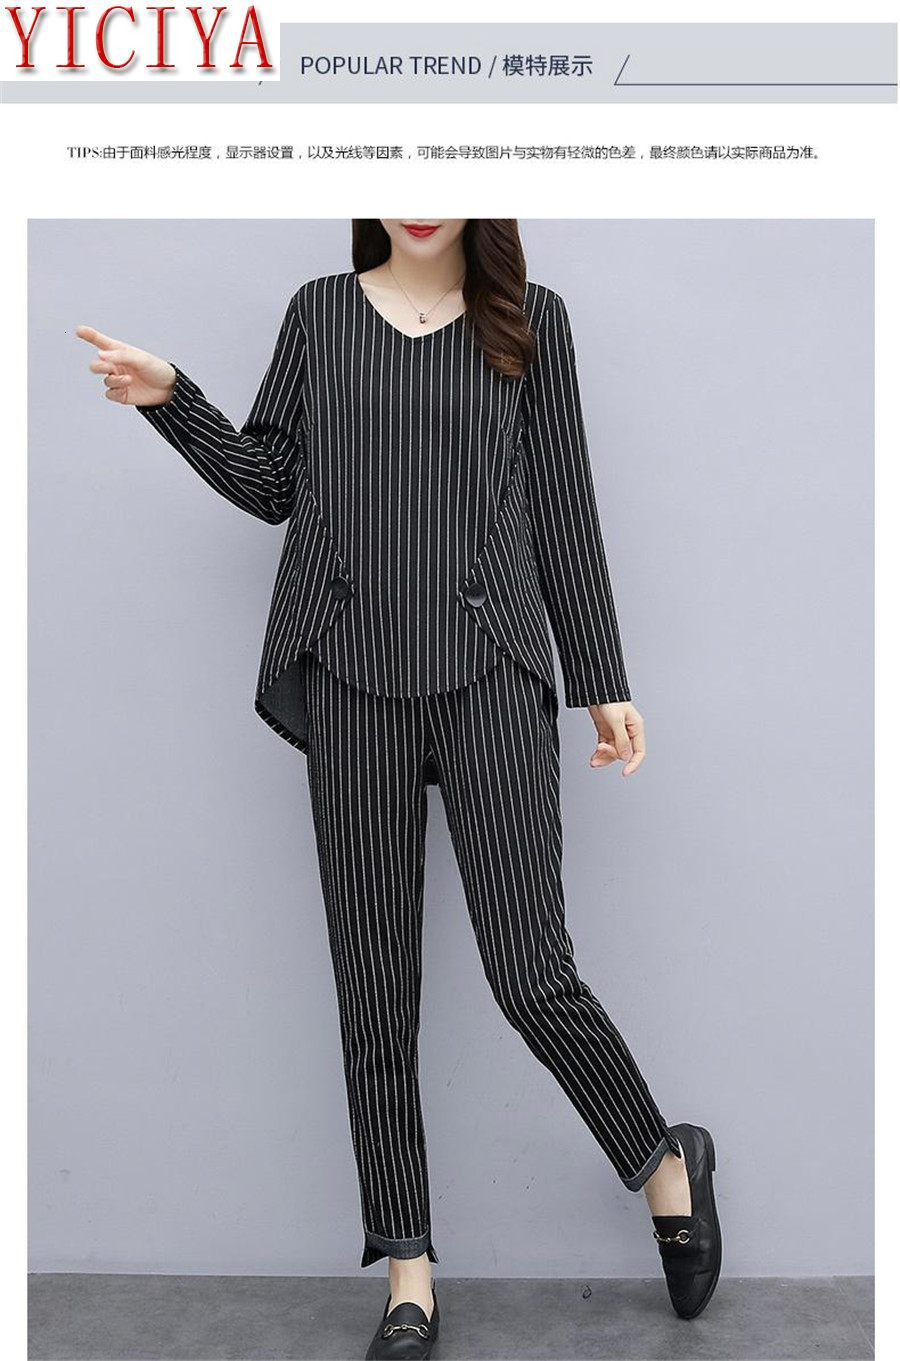 H39284e408b5946b6850221d503c296911 - Striped 2 Piece Set Tracksuits Outfits for Women Plus Size Large Matching Co-ord Winter Clothes 2piece Cotton Linen high quality